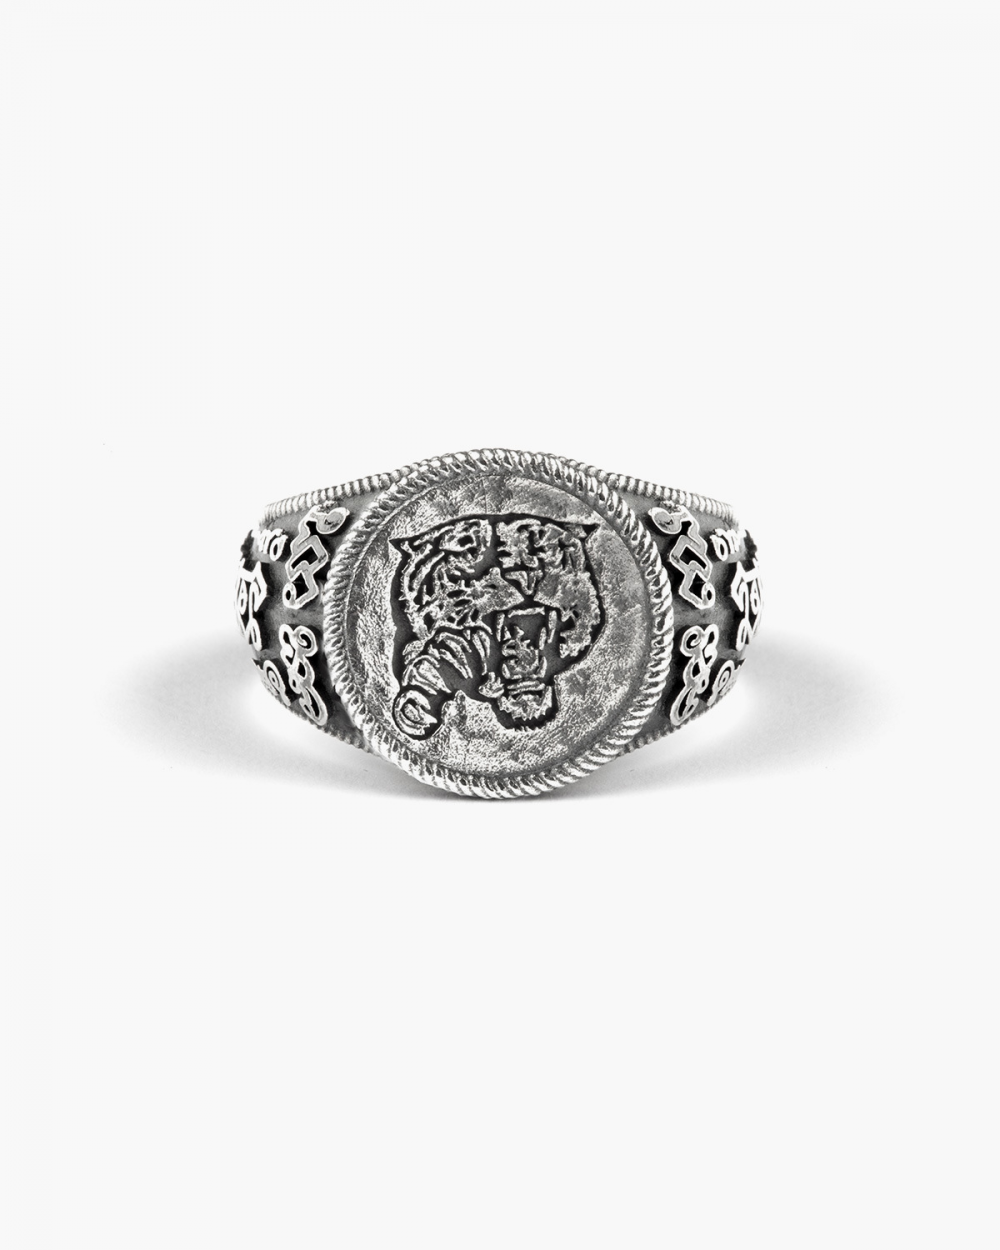 TIGER DECORATION SIGNET RING